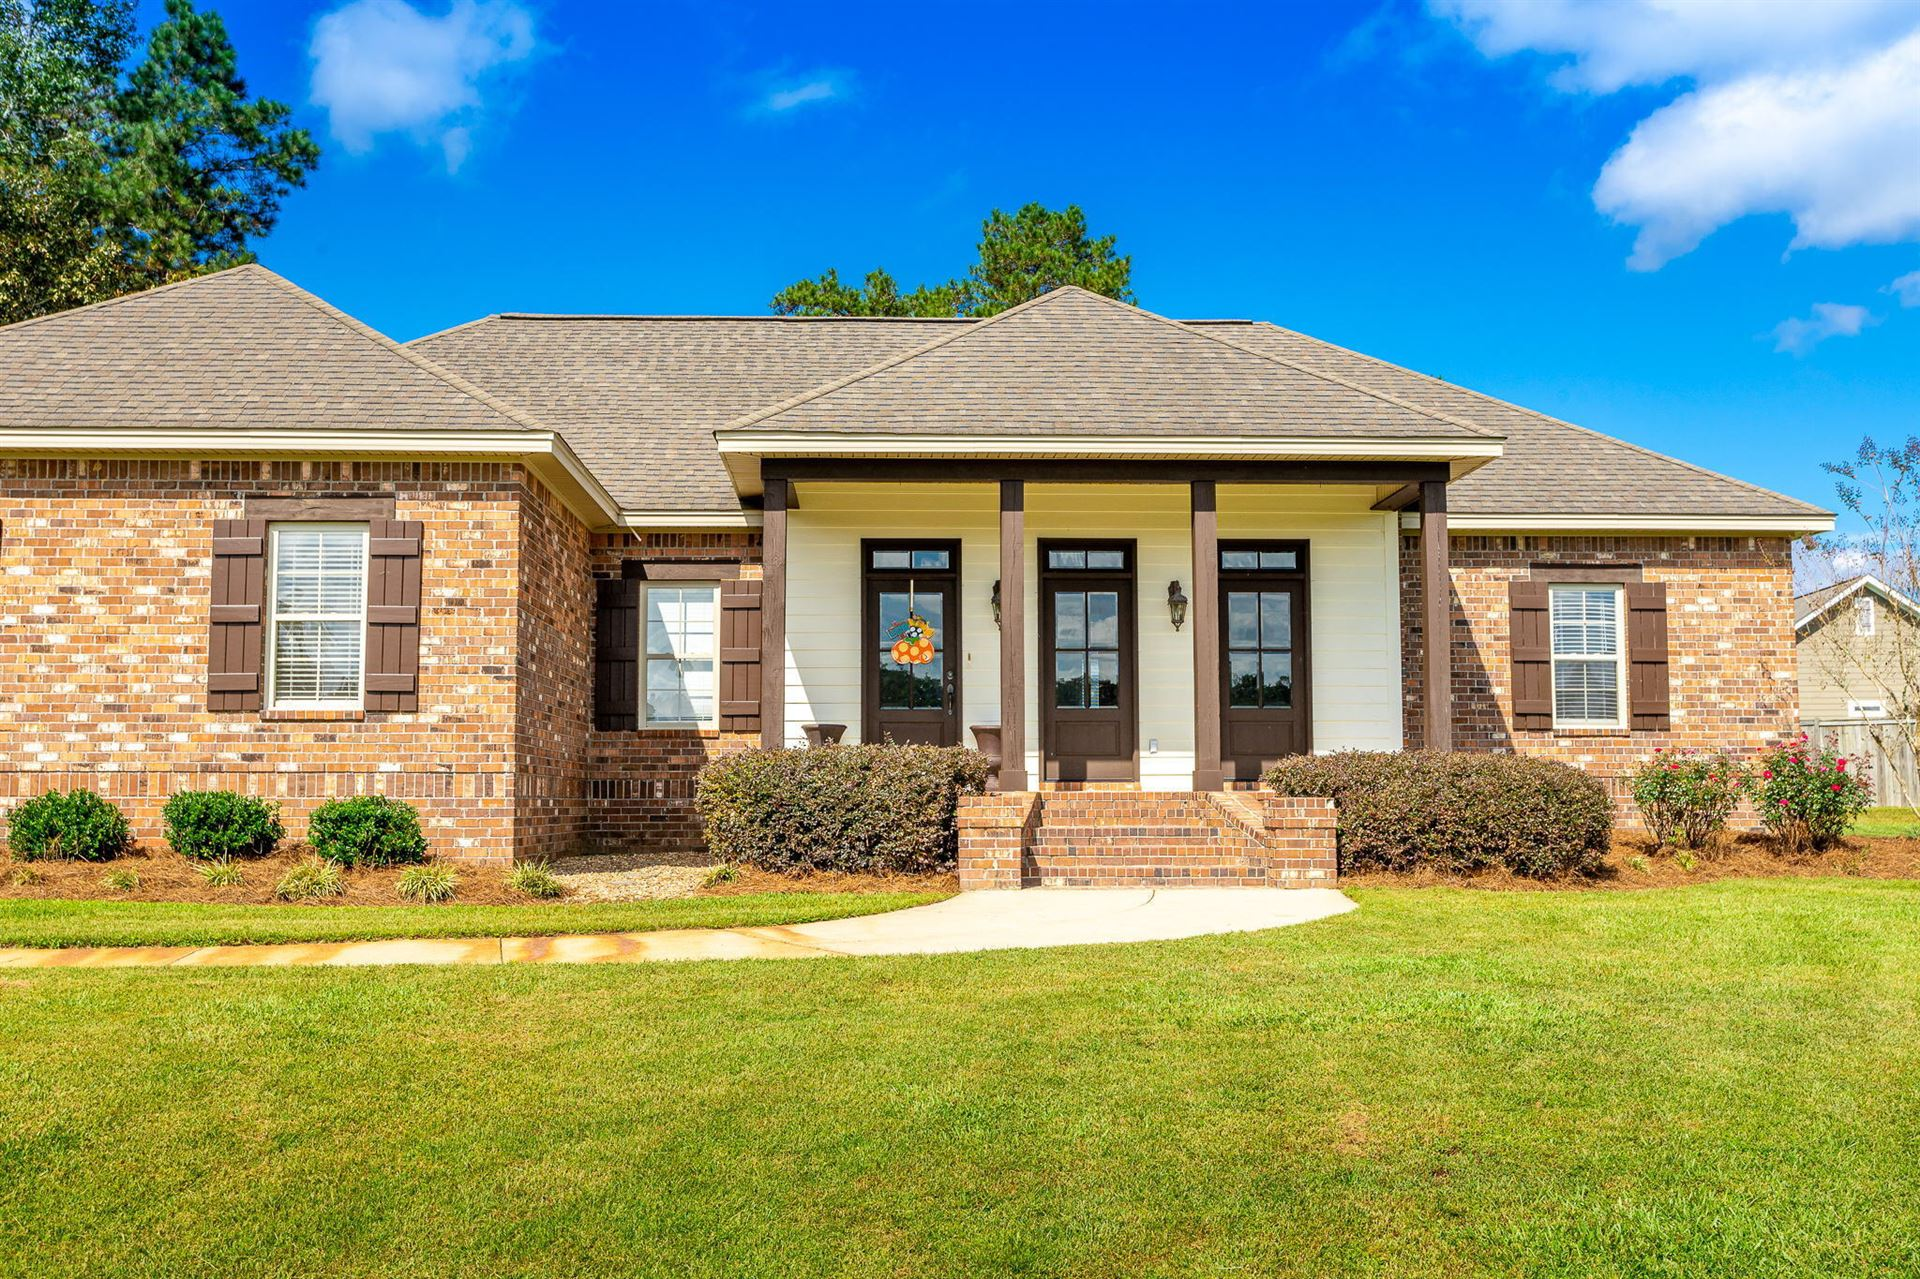 Photo of 26 W Spruce, Sumrall, MS 39482 (MLS # 127384)